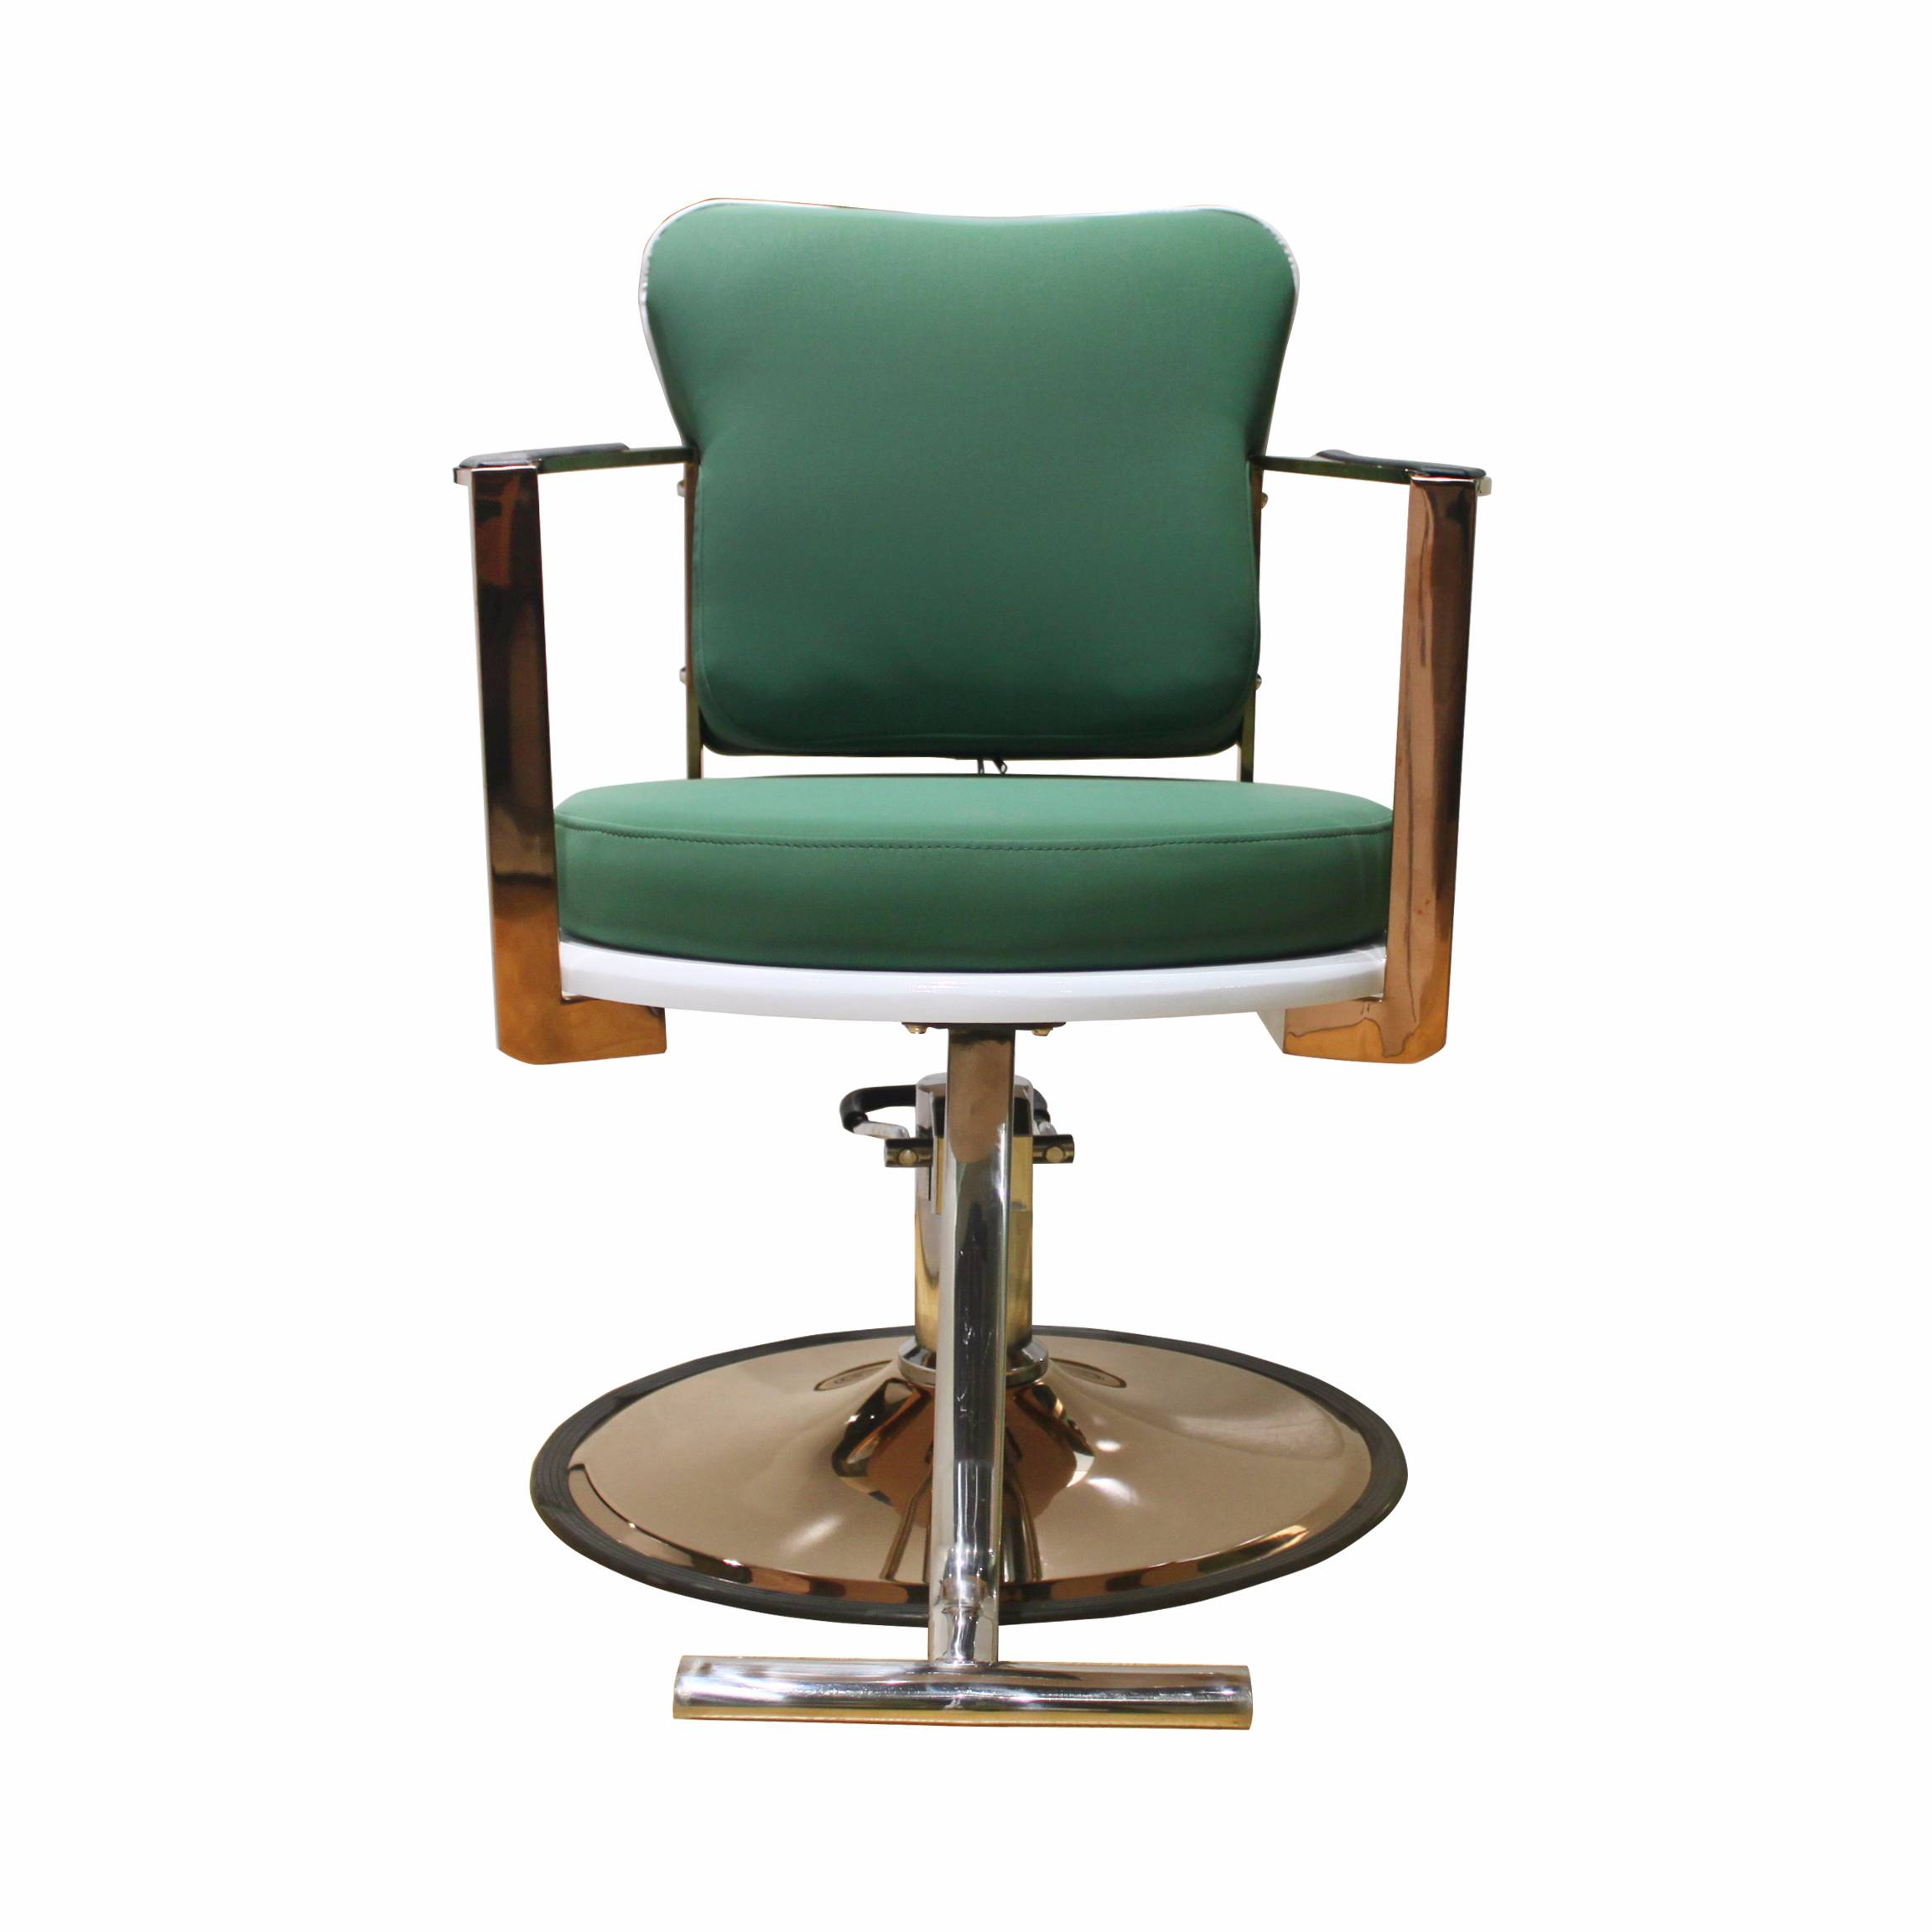 New design and fashionable styling chair for salon